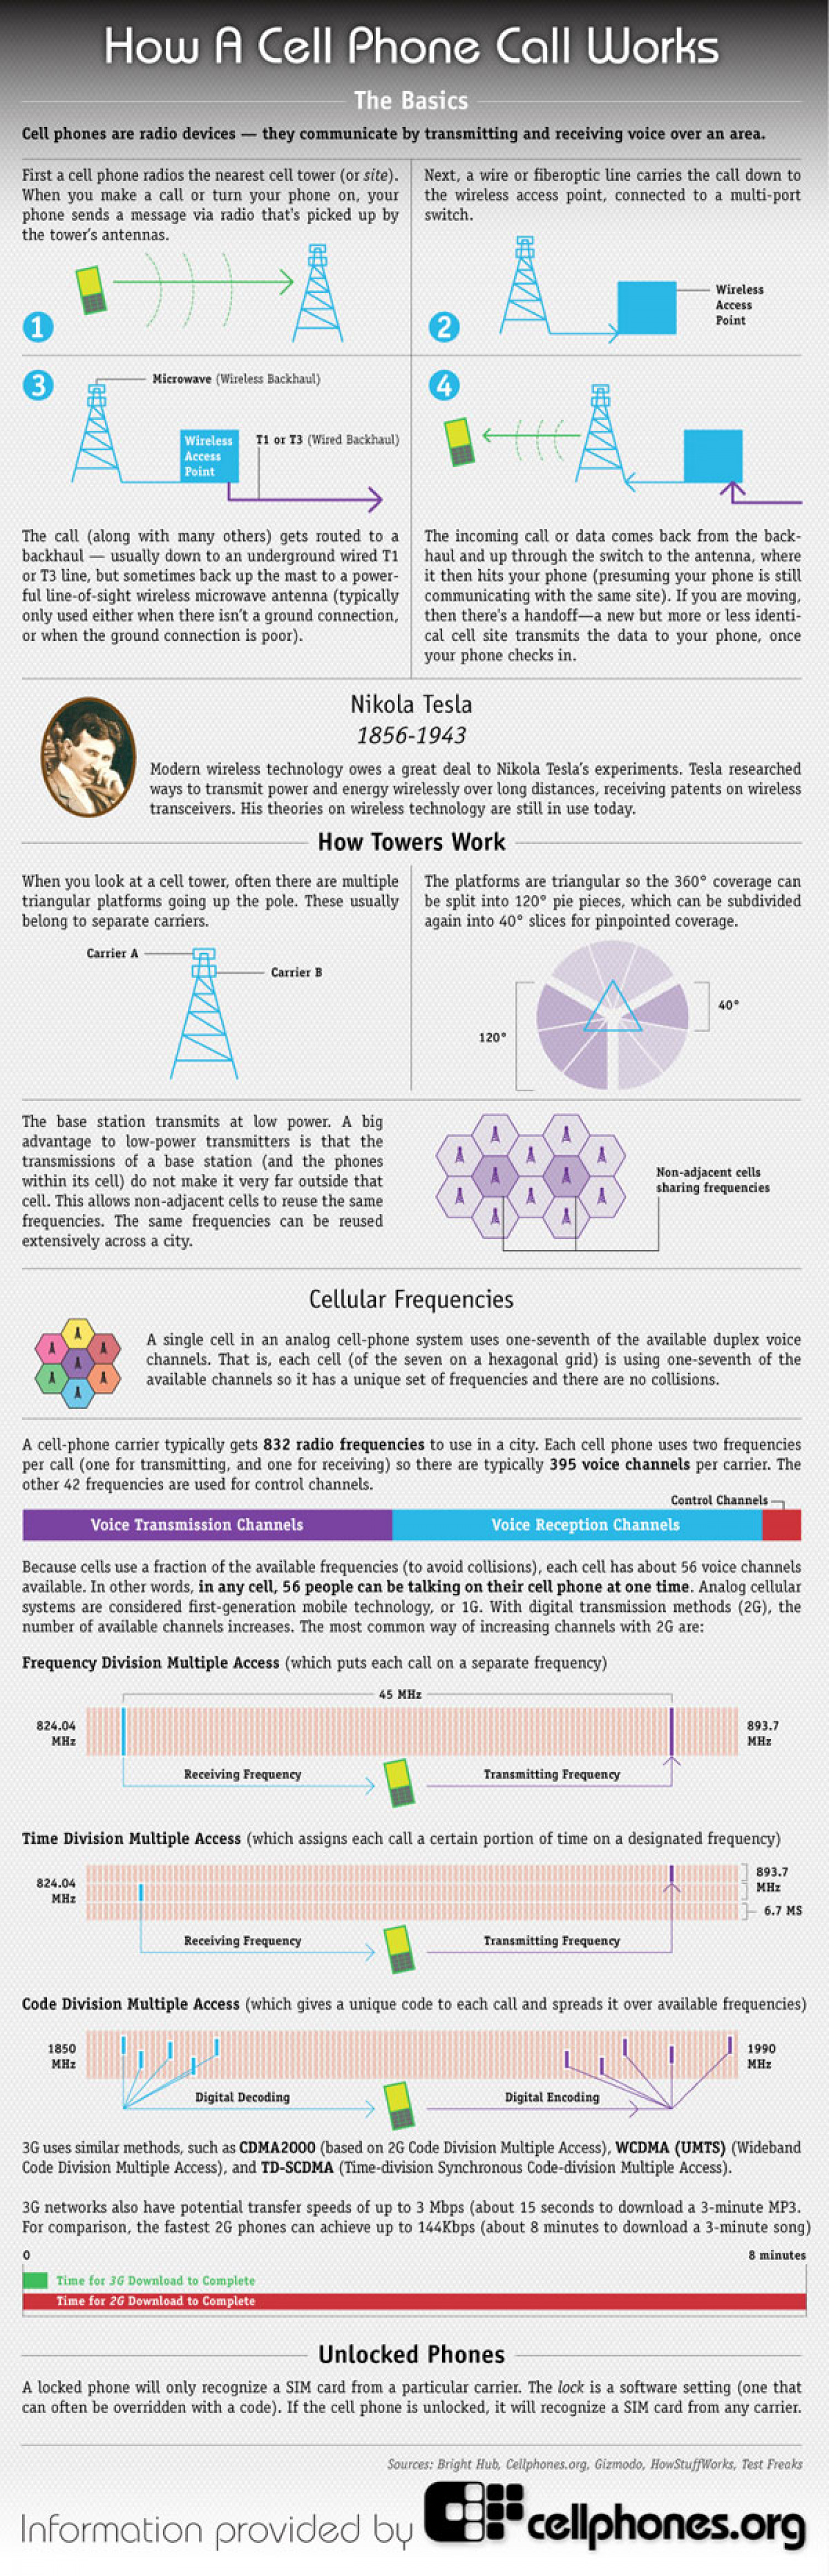 How a Cell Phone Call Works Infographic